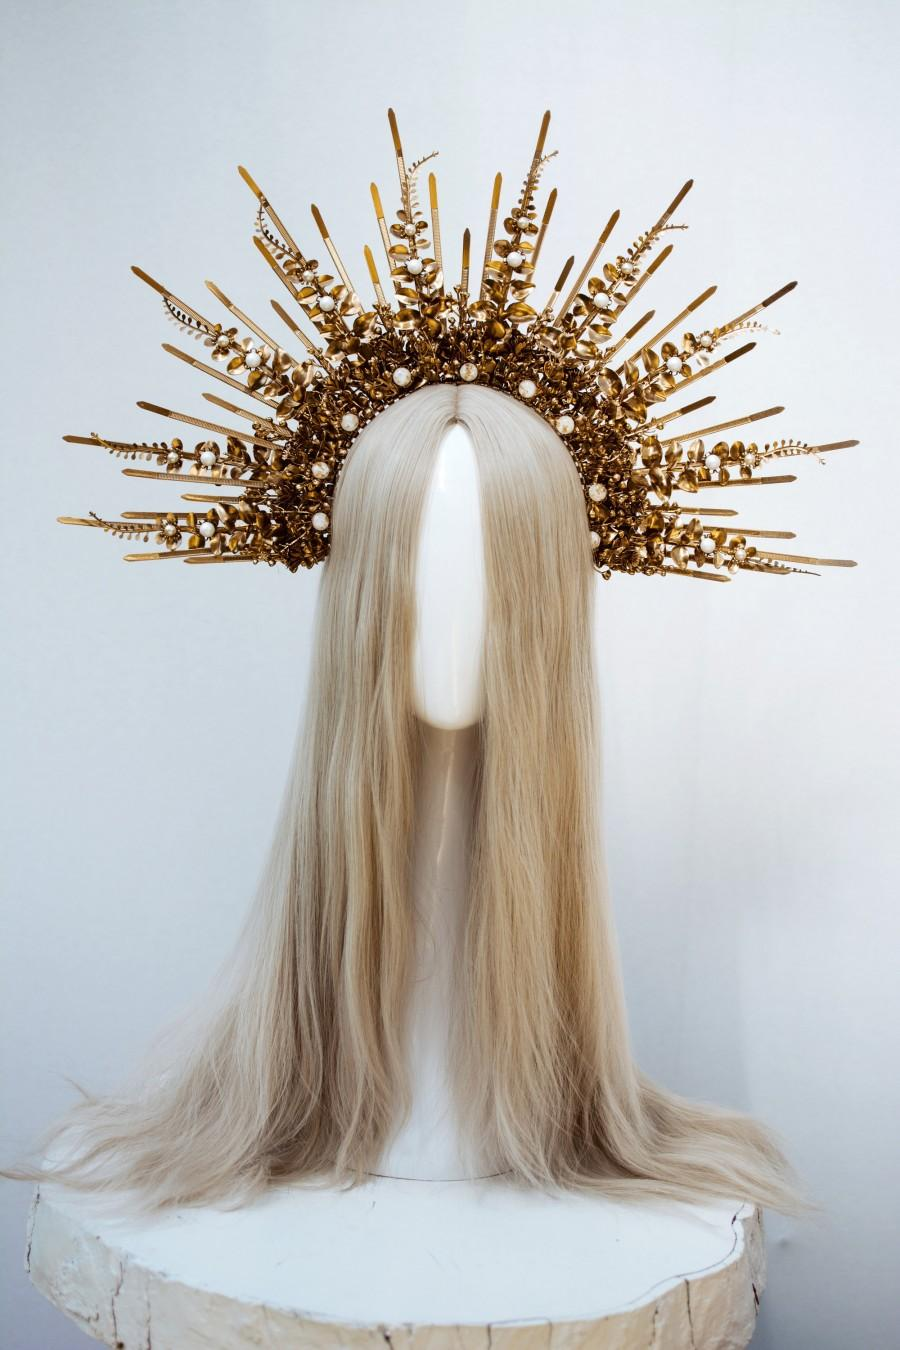 زفاف - Gold Halo crown, Glitter Halo Headpiece, Festival crown, Festival headpiece, Met Gala Crown, Sunburst Crown, Gold Zip Tie Crown, Mary Crown